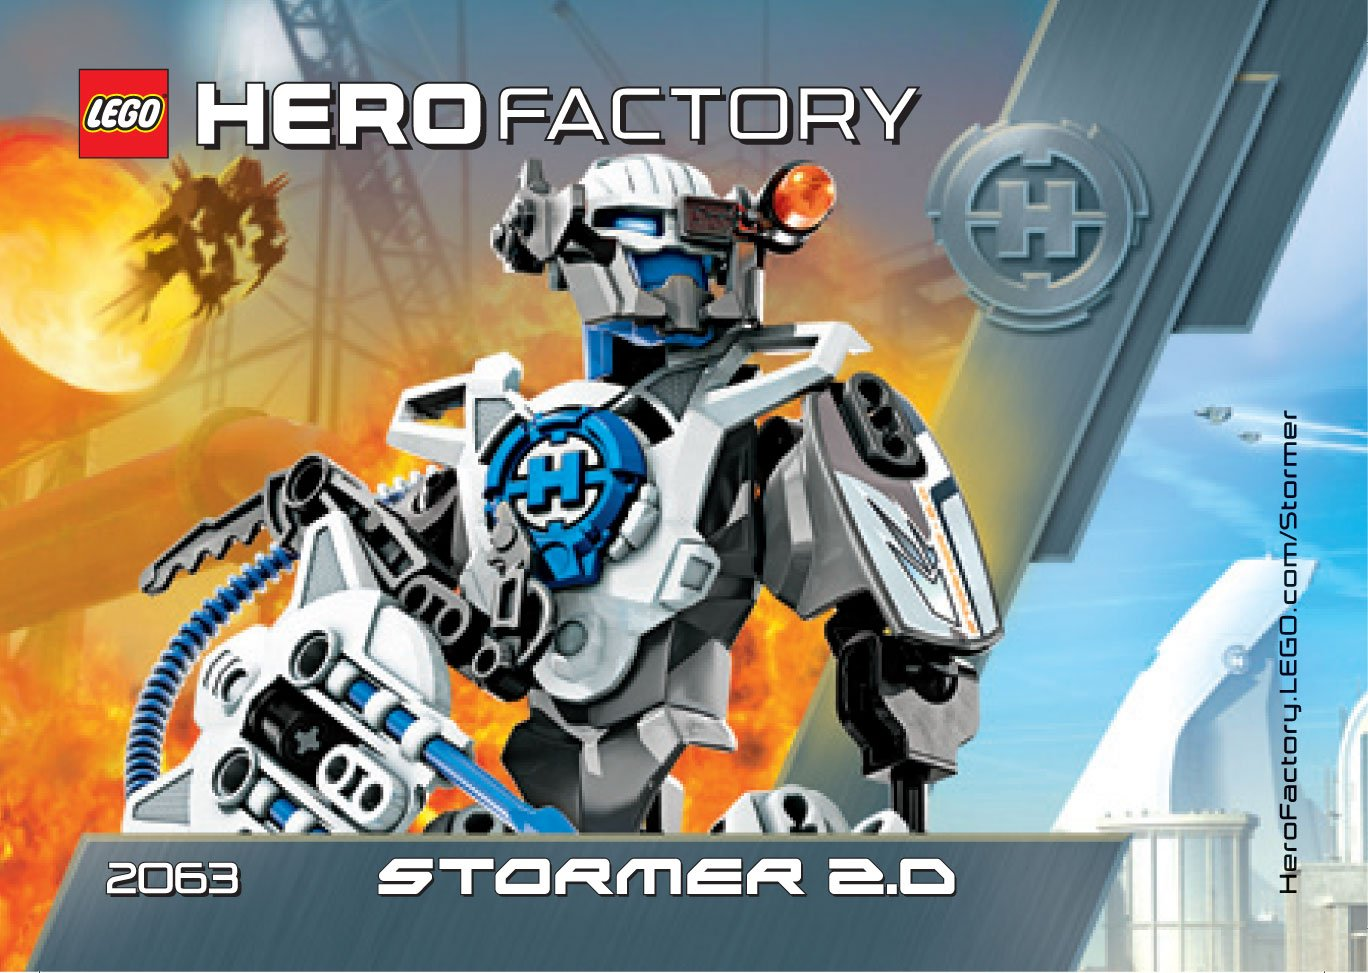 Lego Hero Factory 2063 Stormer 20 Amazon Toys Games